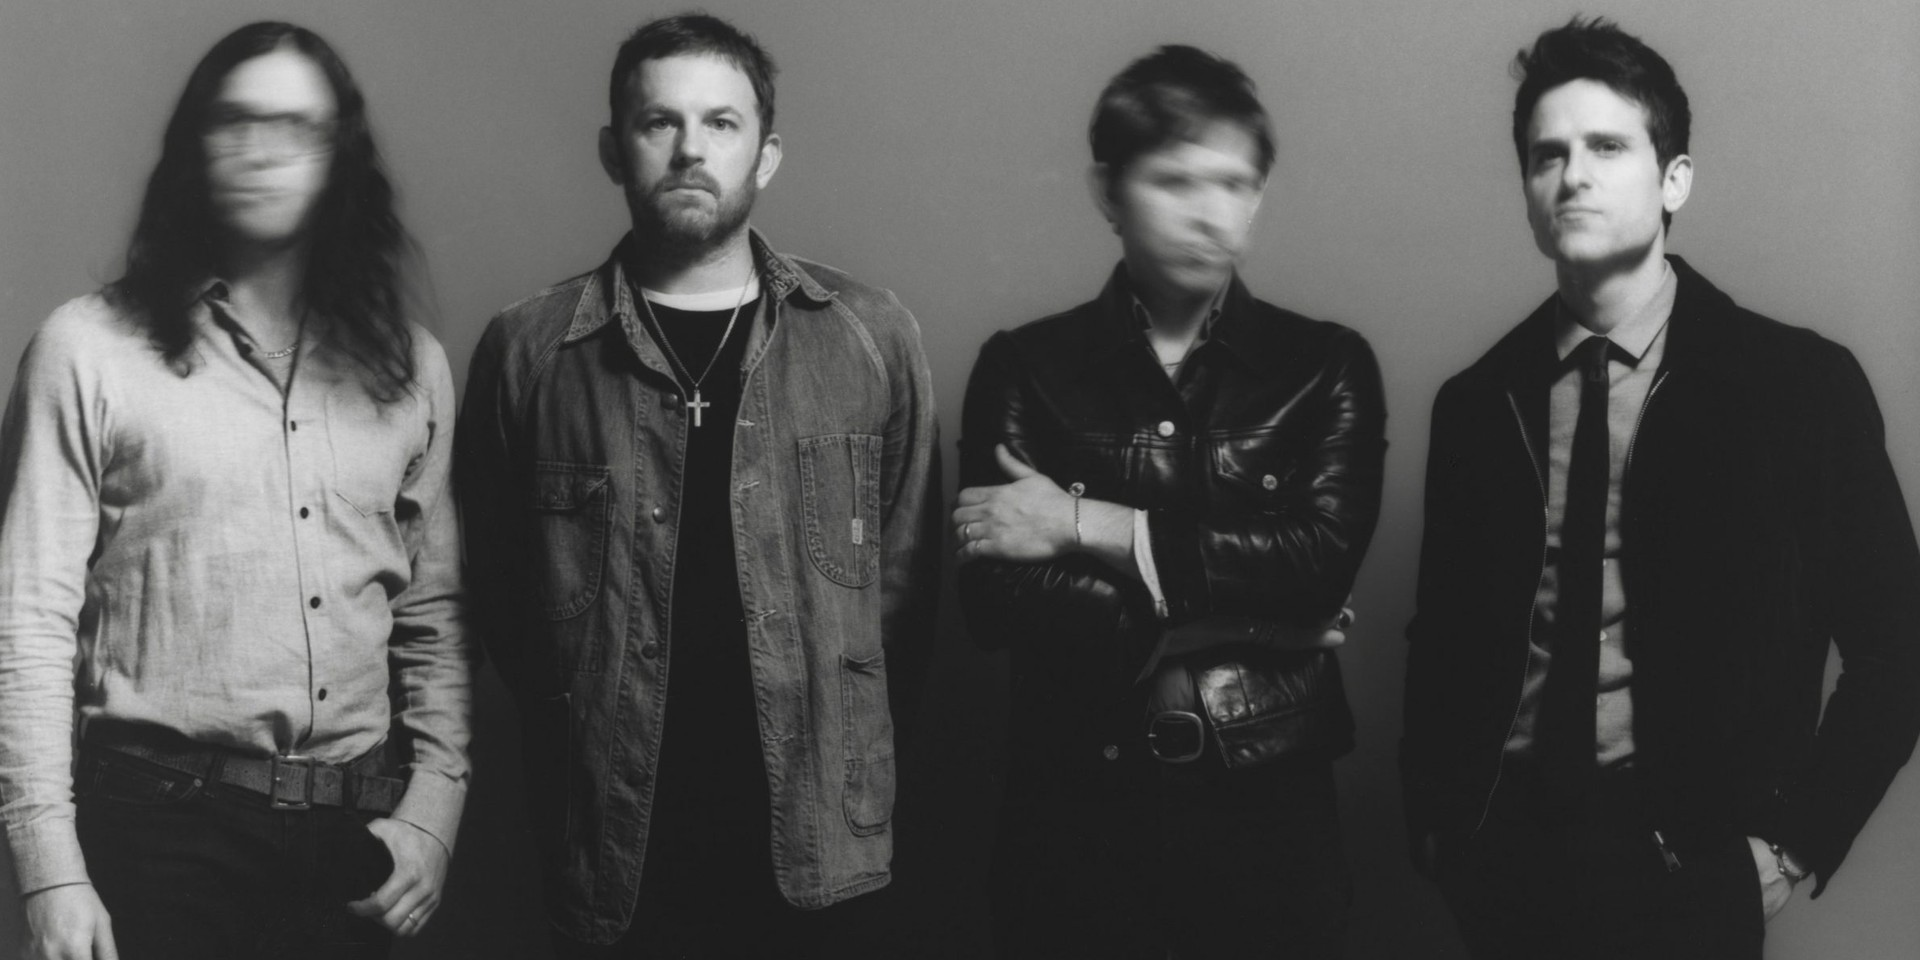 Kings of Leon's 'When You See Yourself' album to be released as an NFT